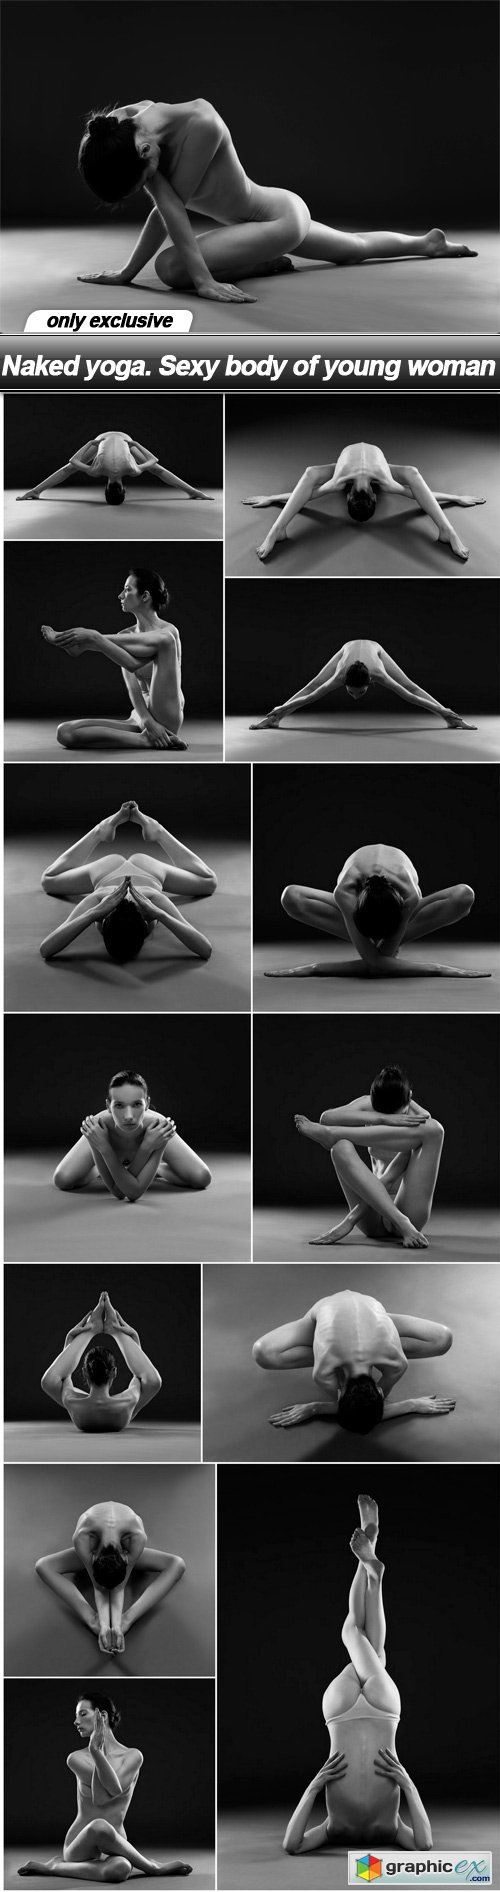 Naked yoga. Sexy body of young woman - 14 UHQ JPEG